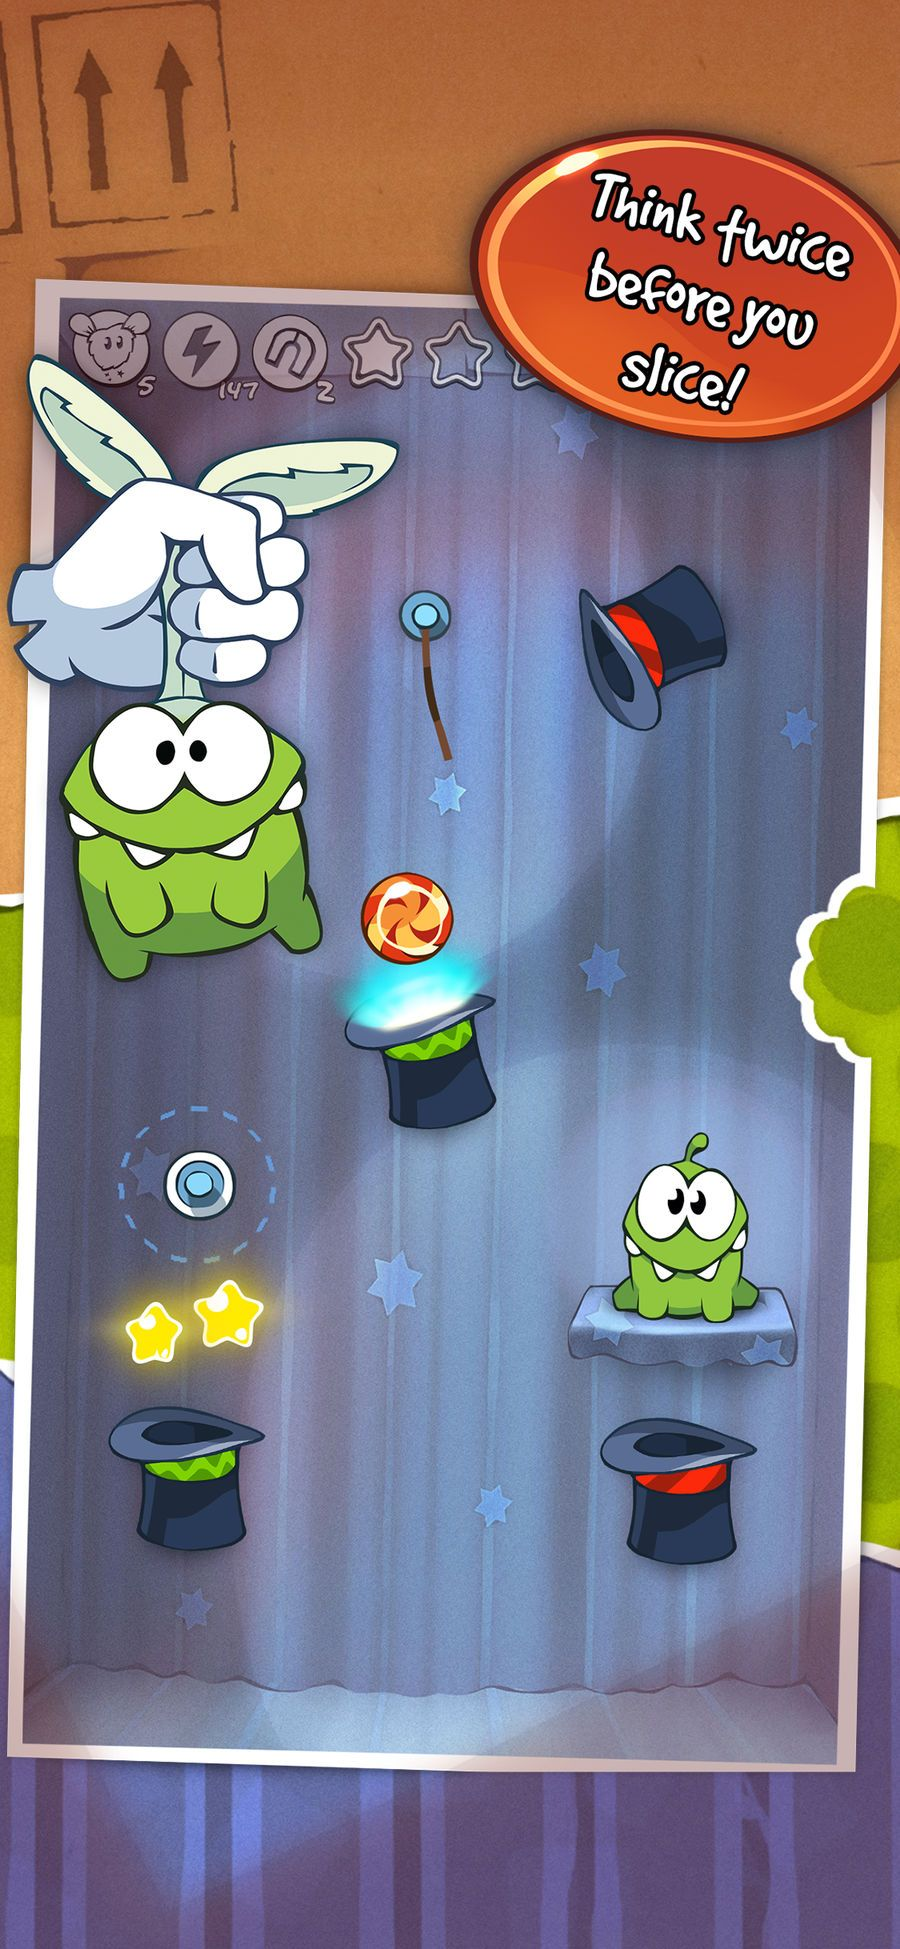 Om Nom returns for more cord-cutting fun